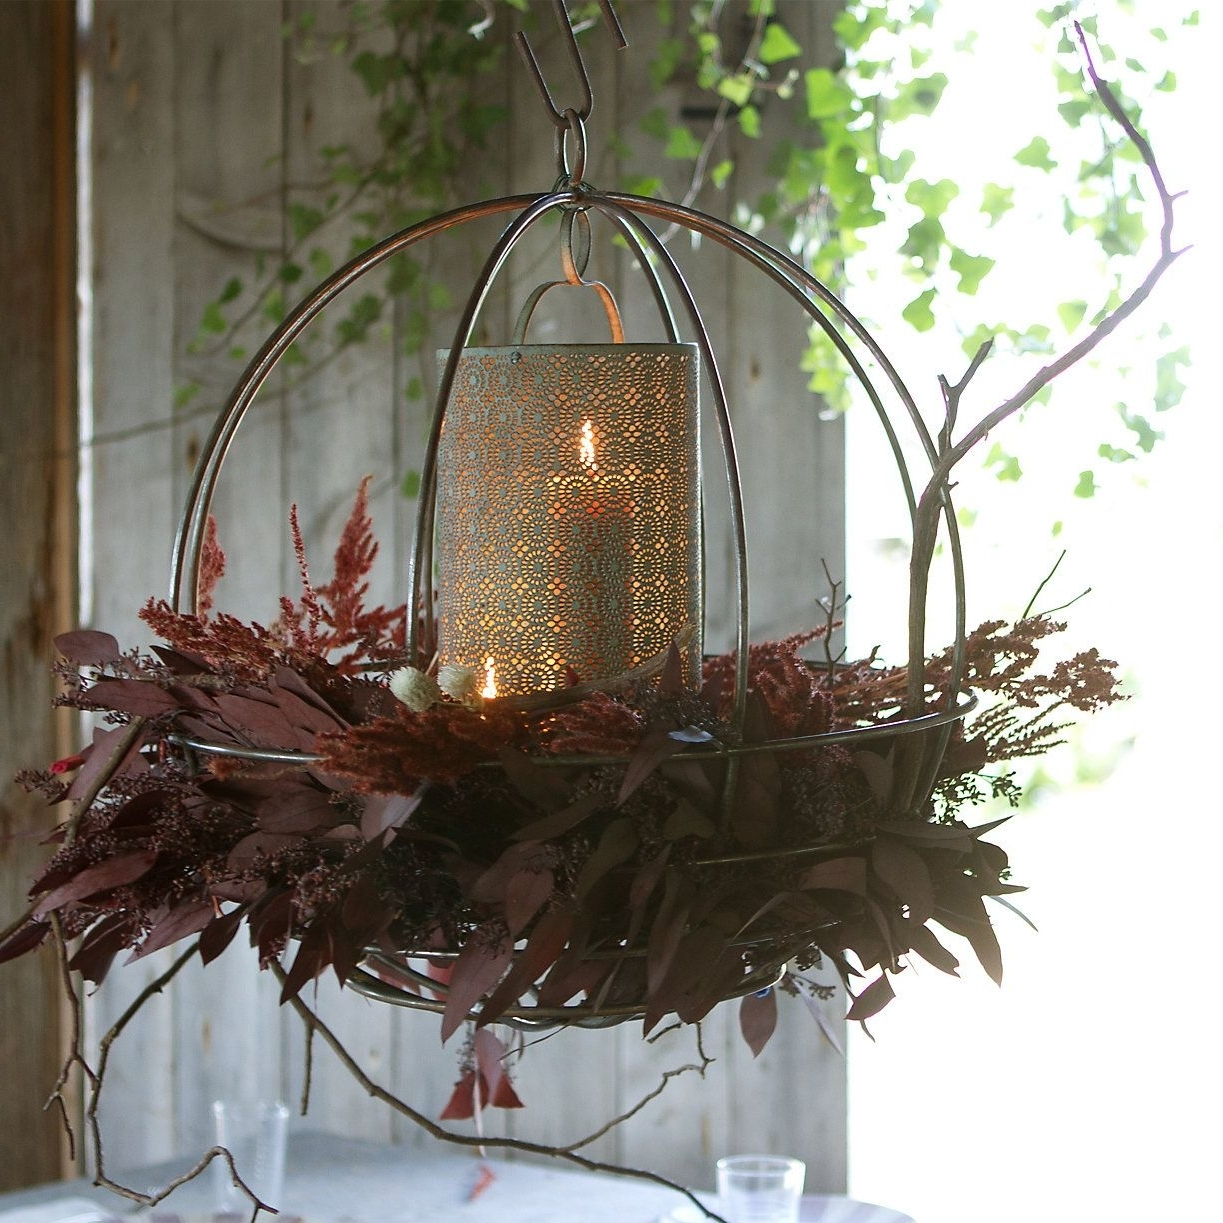 Widely Used Sphere Hanging Basket In Outdoor Living Garden Décor Lighting At Throughout Outdoor Hanging Basket Lights (View 20 of 20)